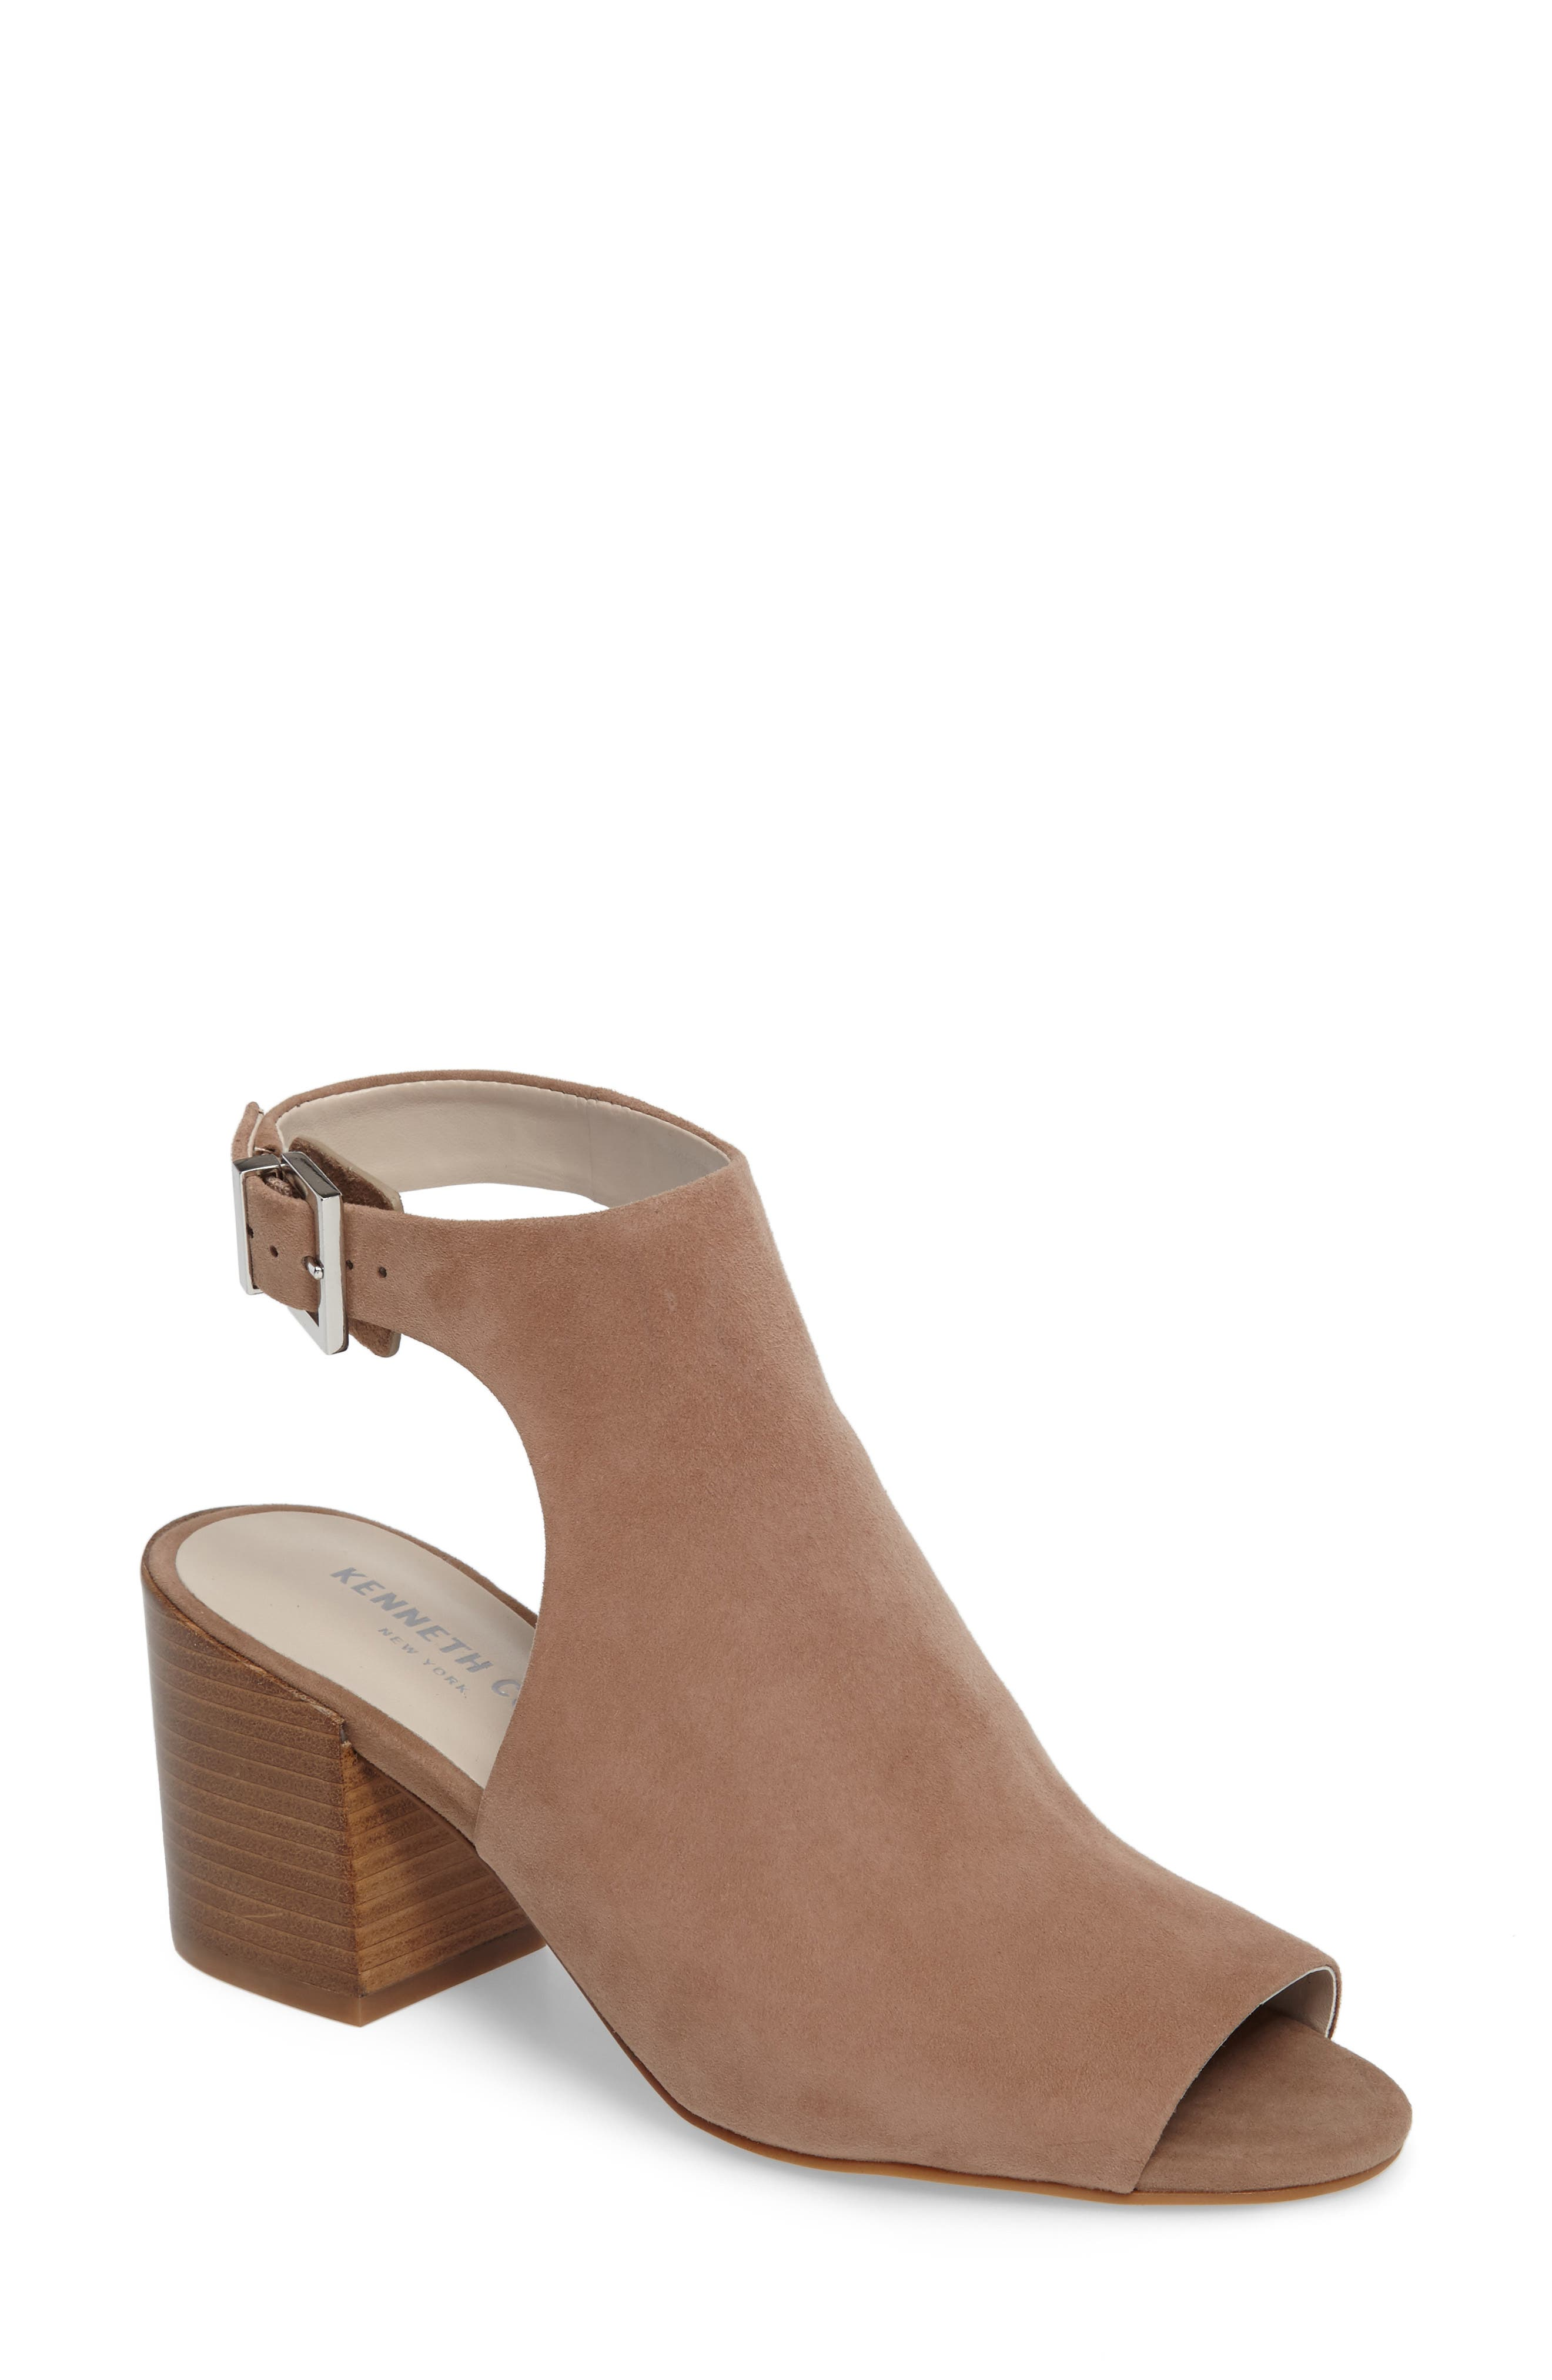 Main Image - Kenneth Cole New York 'Val' Sandal (Women)